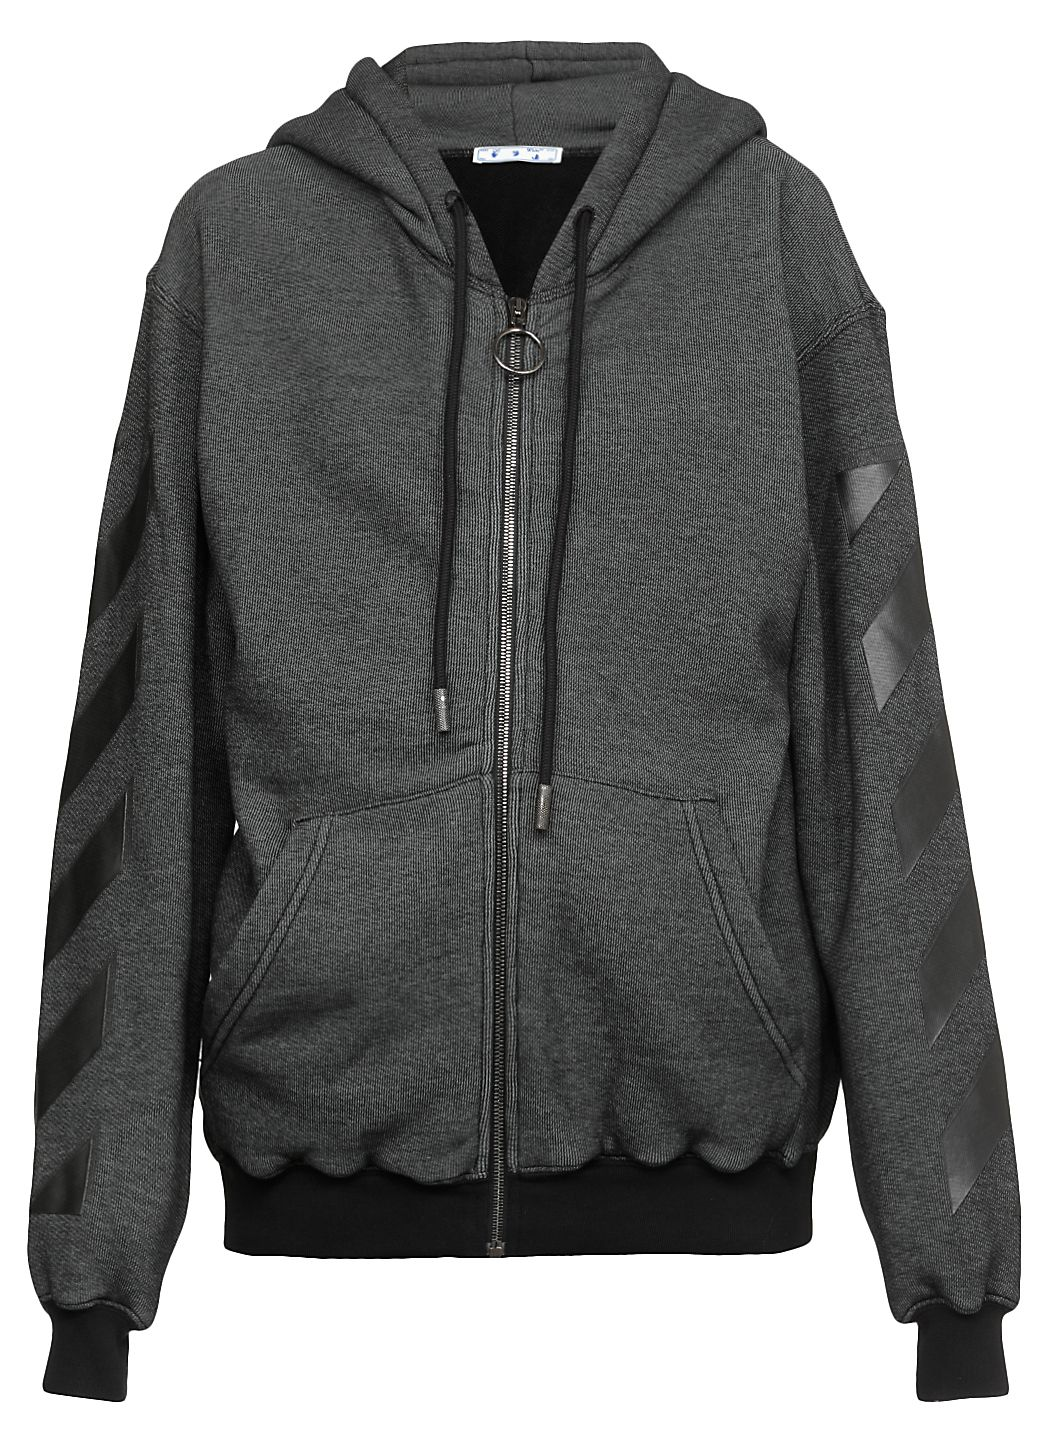 Arrow Zipped sweatshirt